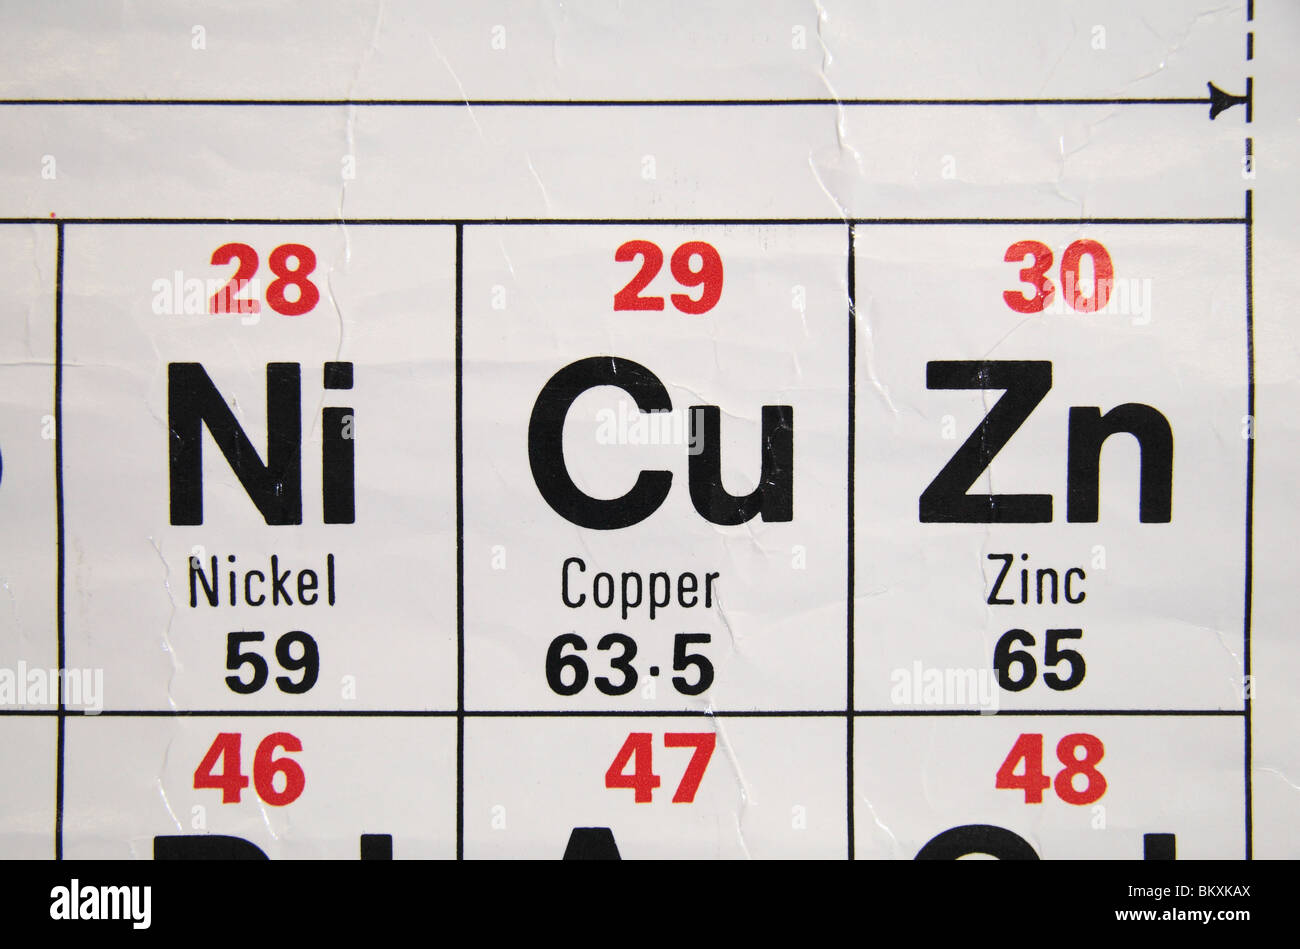 Close up view of a standard uk high school periodic table focusing close up view of a standard uk high school periodic table focusing on nickel copper and zinc urtaz Gallery